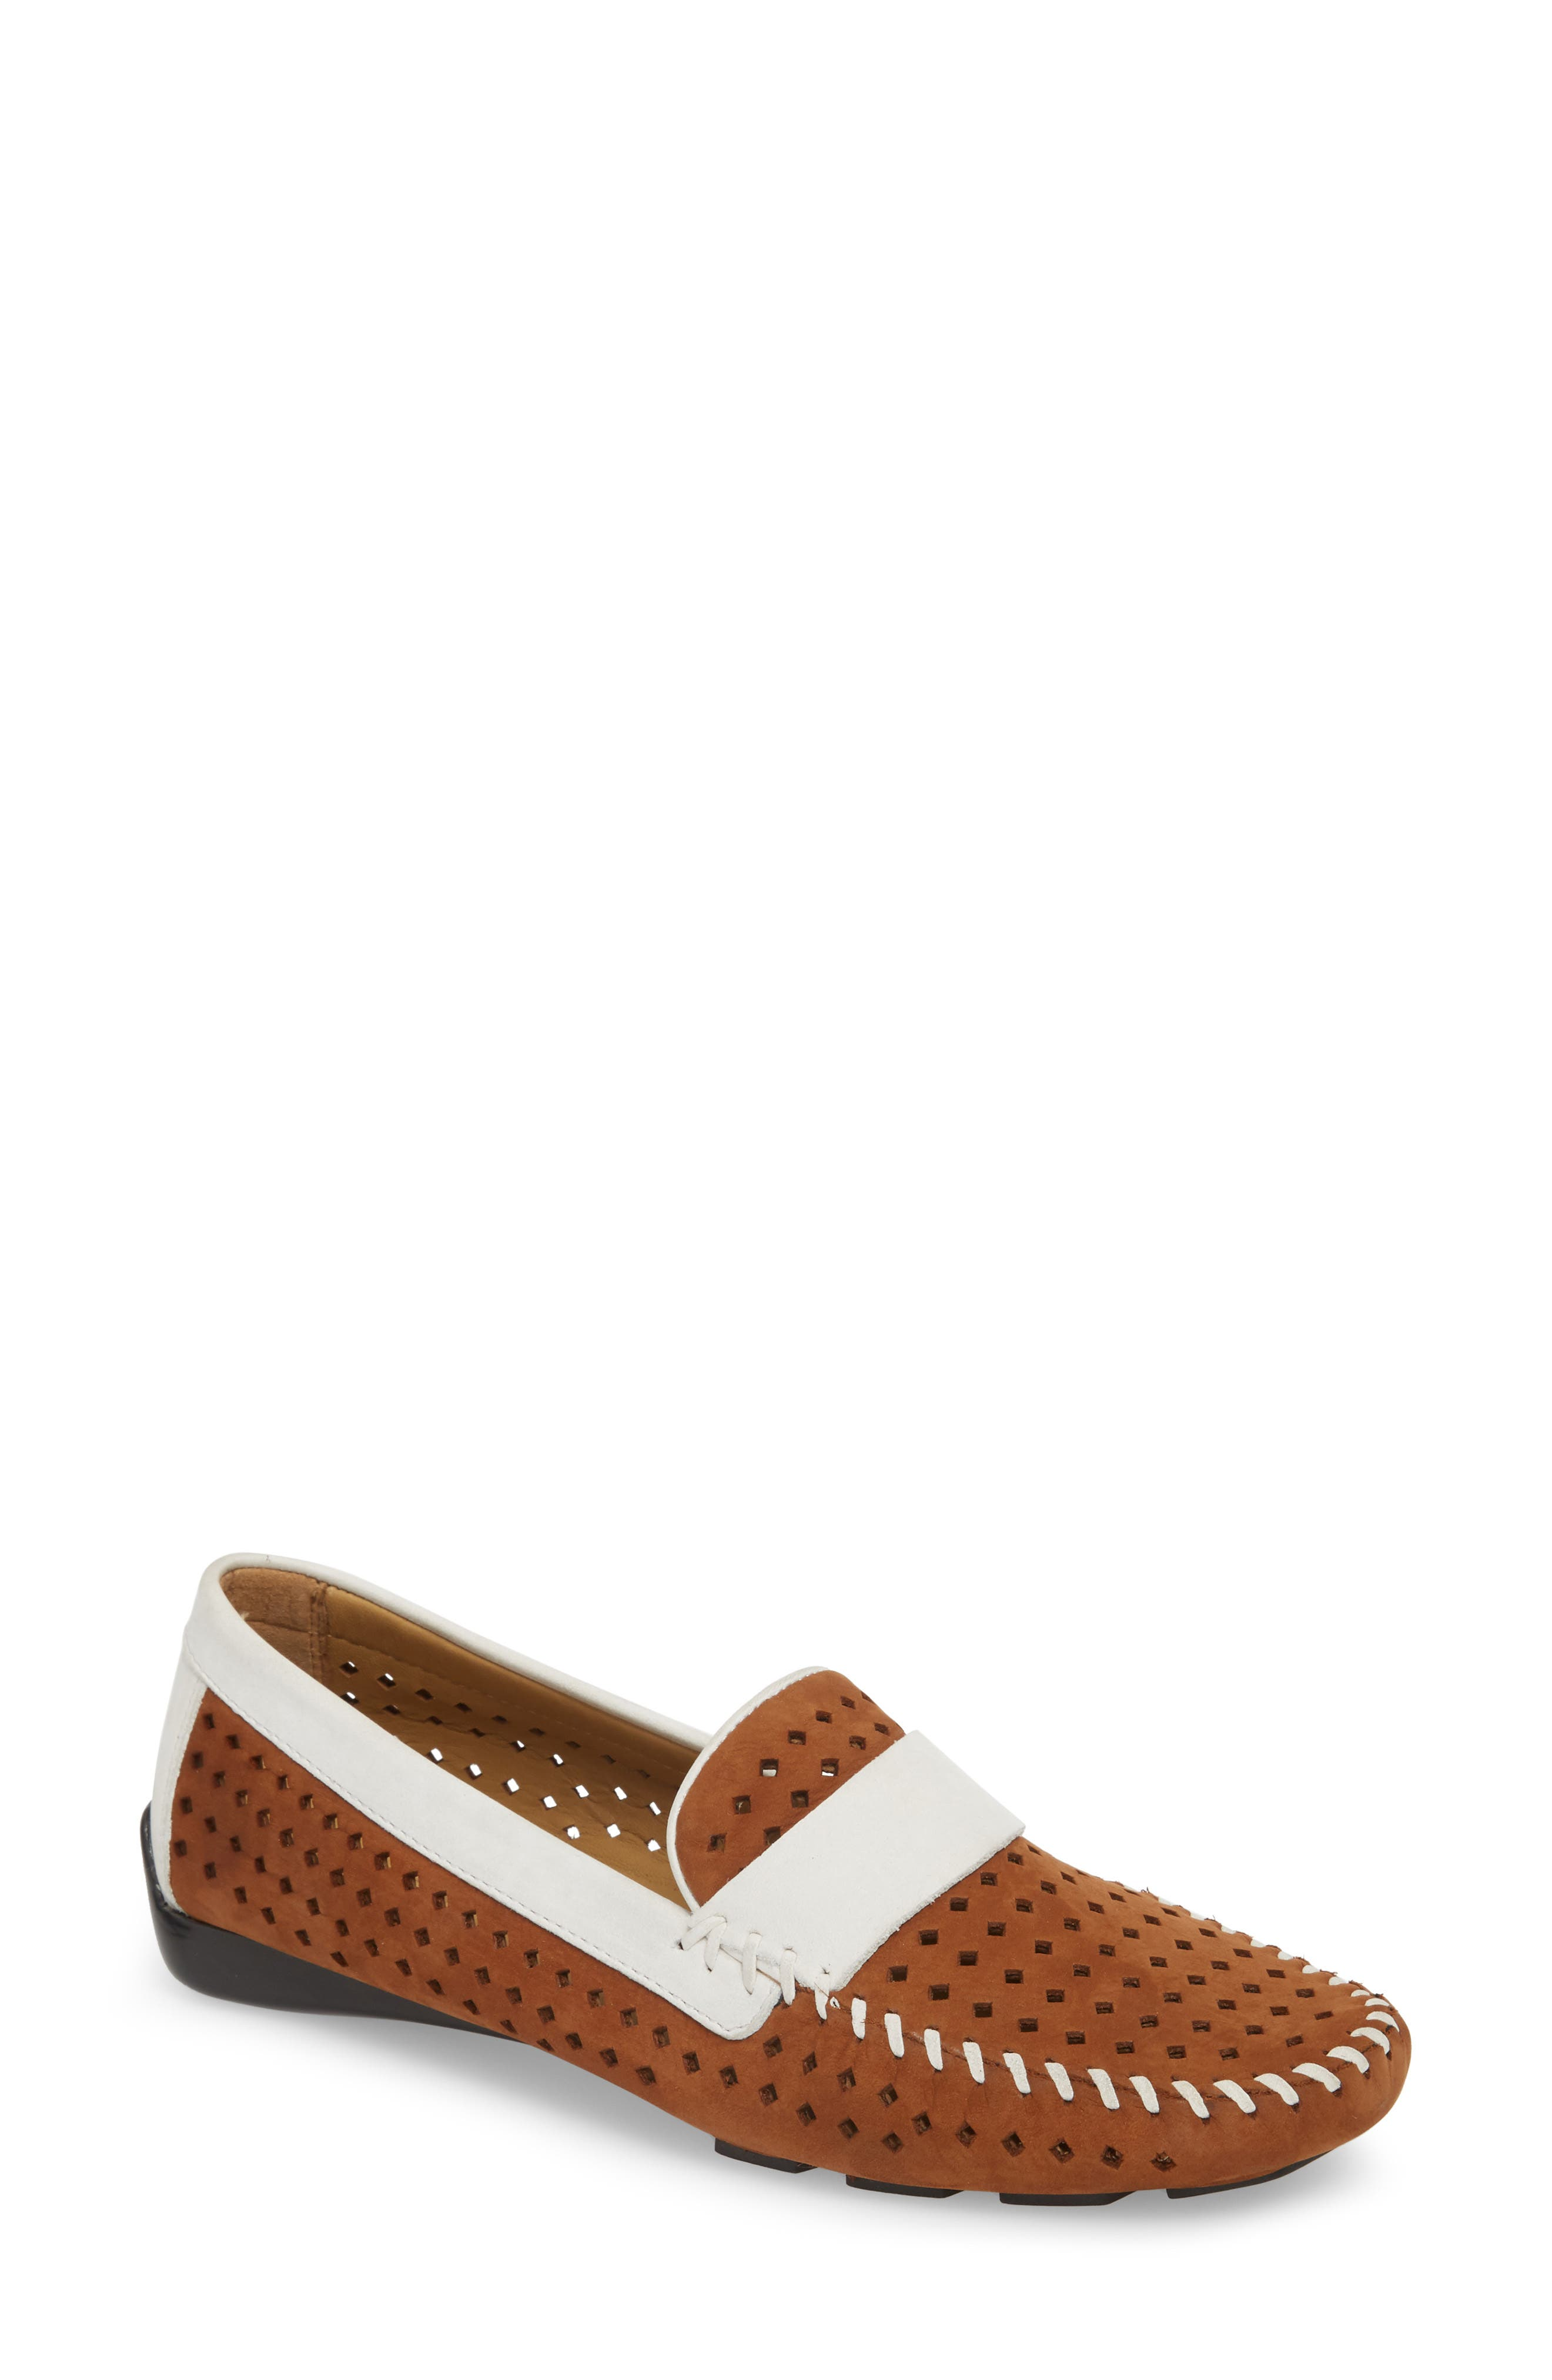 Pace Loafer,                             Main thumbnail 1, color,                             TAN/ WHITE NUBUCK